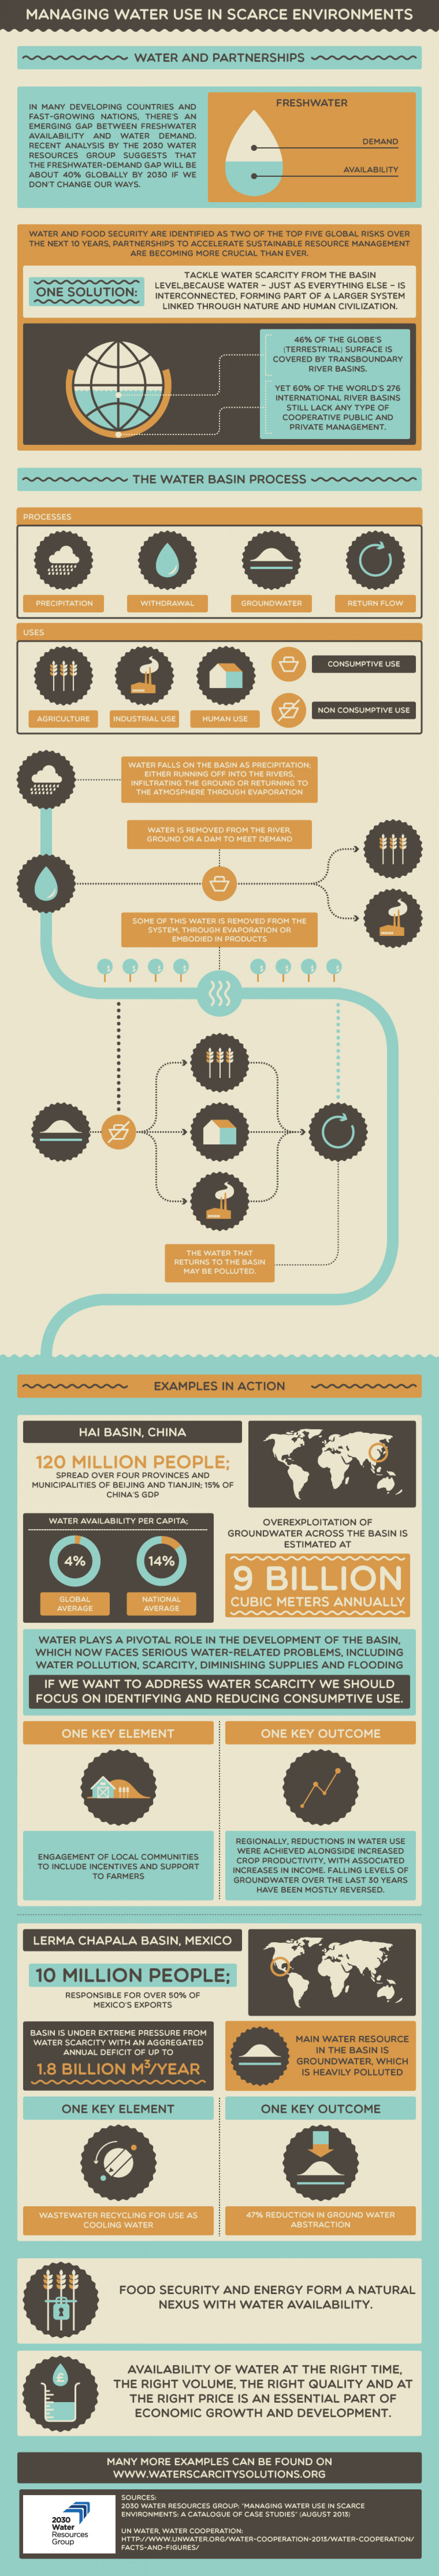 Managing Water Use in Scarce Environments Infographic